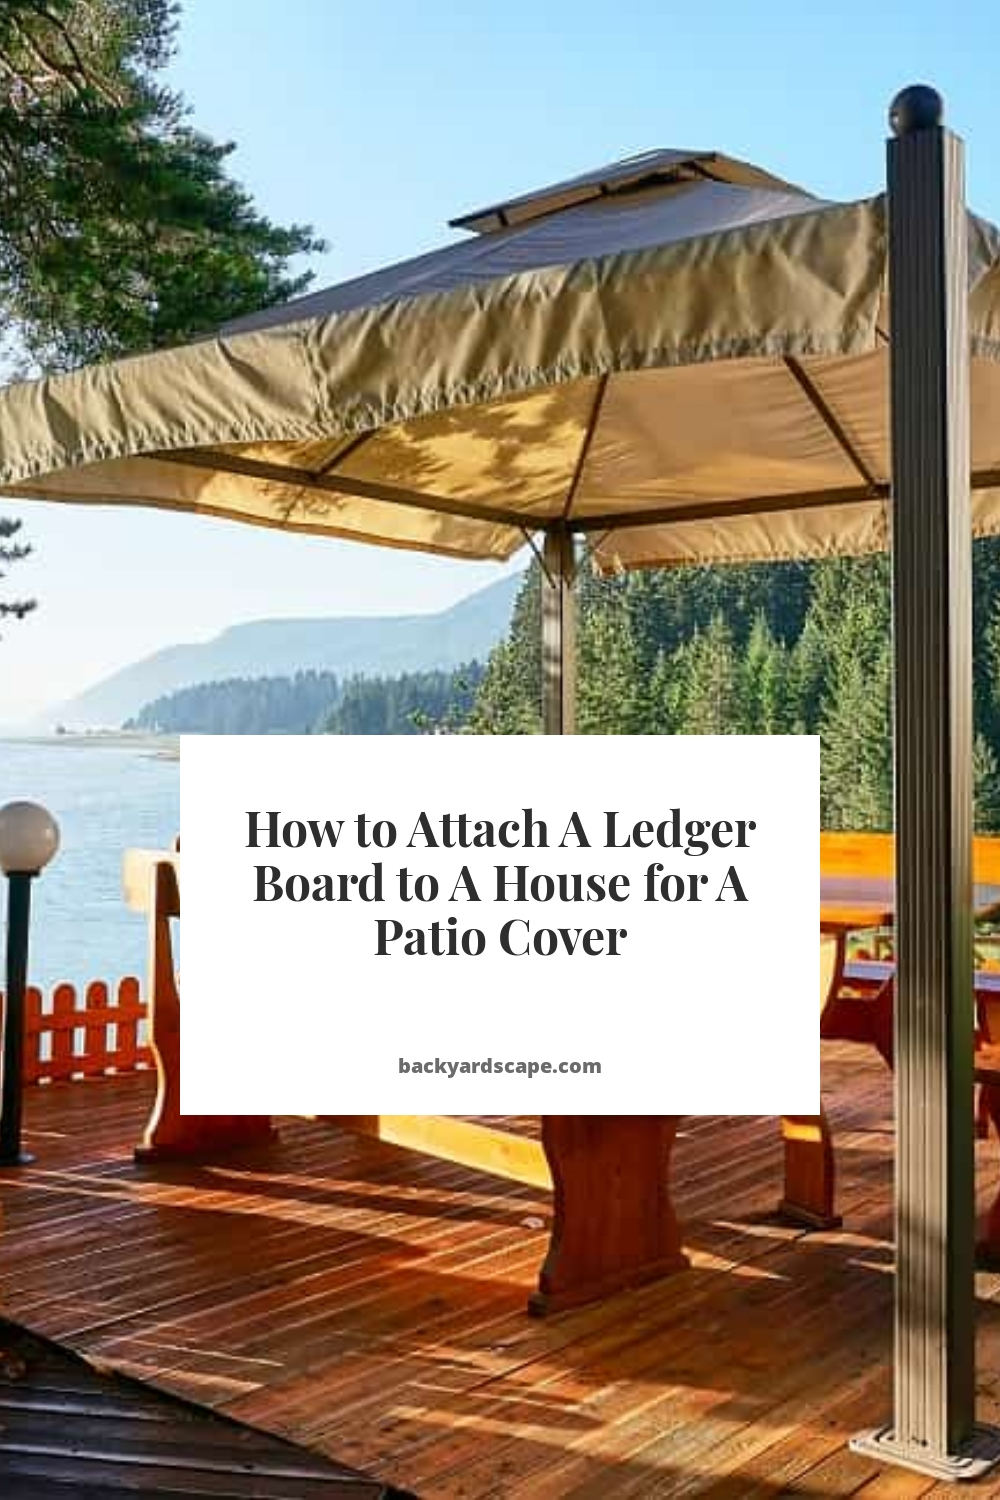 How to Attach A Ledger Board to A House for A Patio Cover